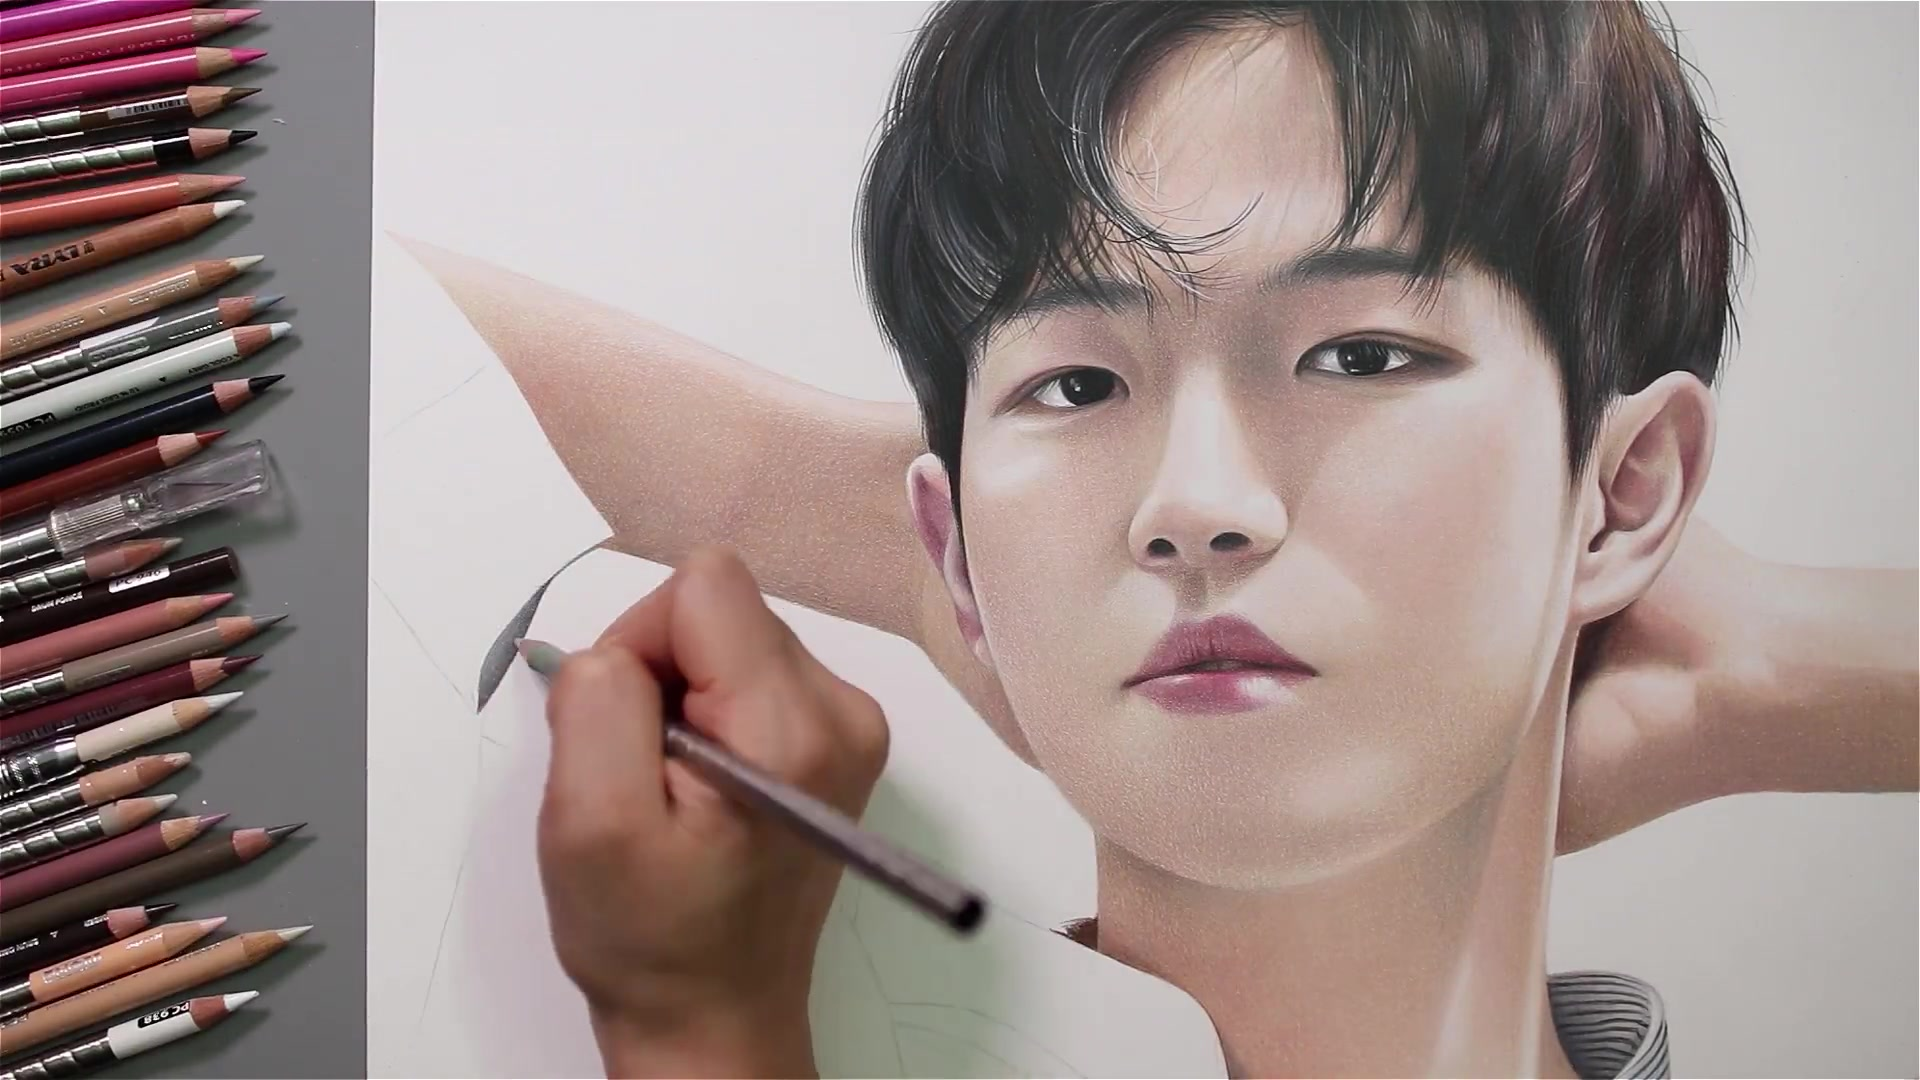 Drawing Hands Episode 52: Speed Drawing Wanna One's Kim Jae Hwan